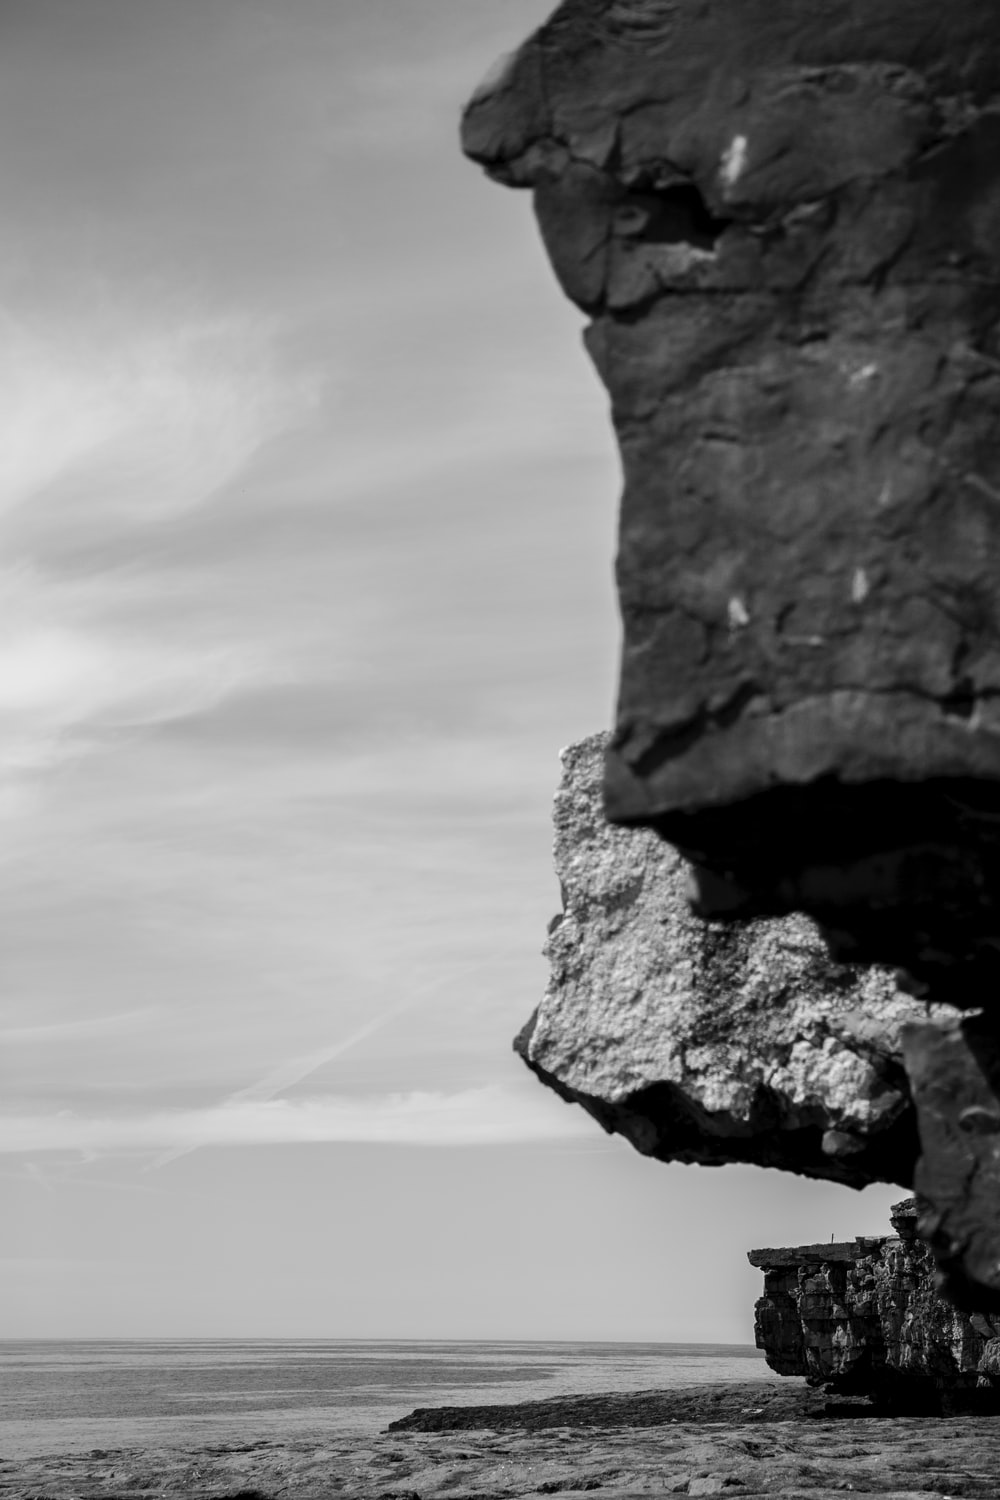 grayscale photography of cliff viewing body of water